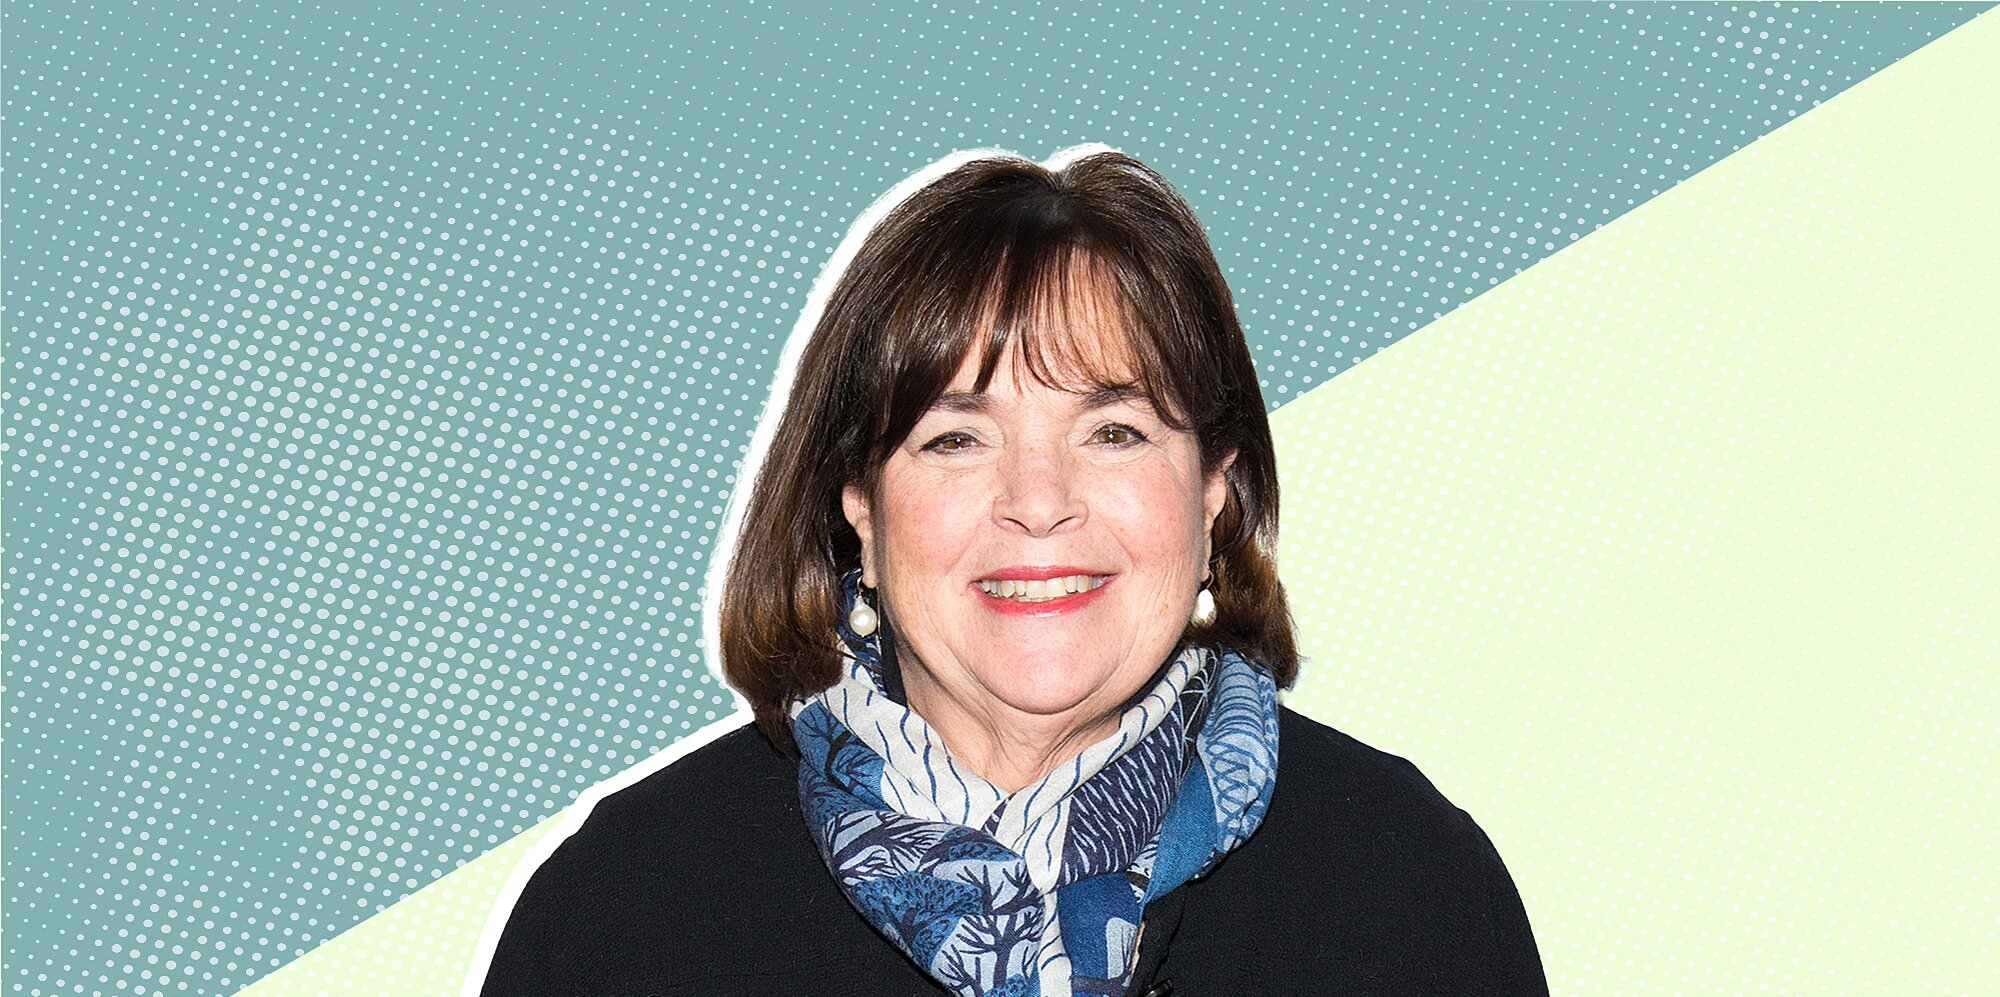 """Ina Garten Is Shaking Up Her Passover Menu With These 4 """"Insanely Good"""" Recipes"""